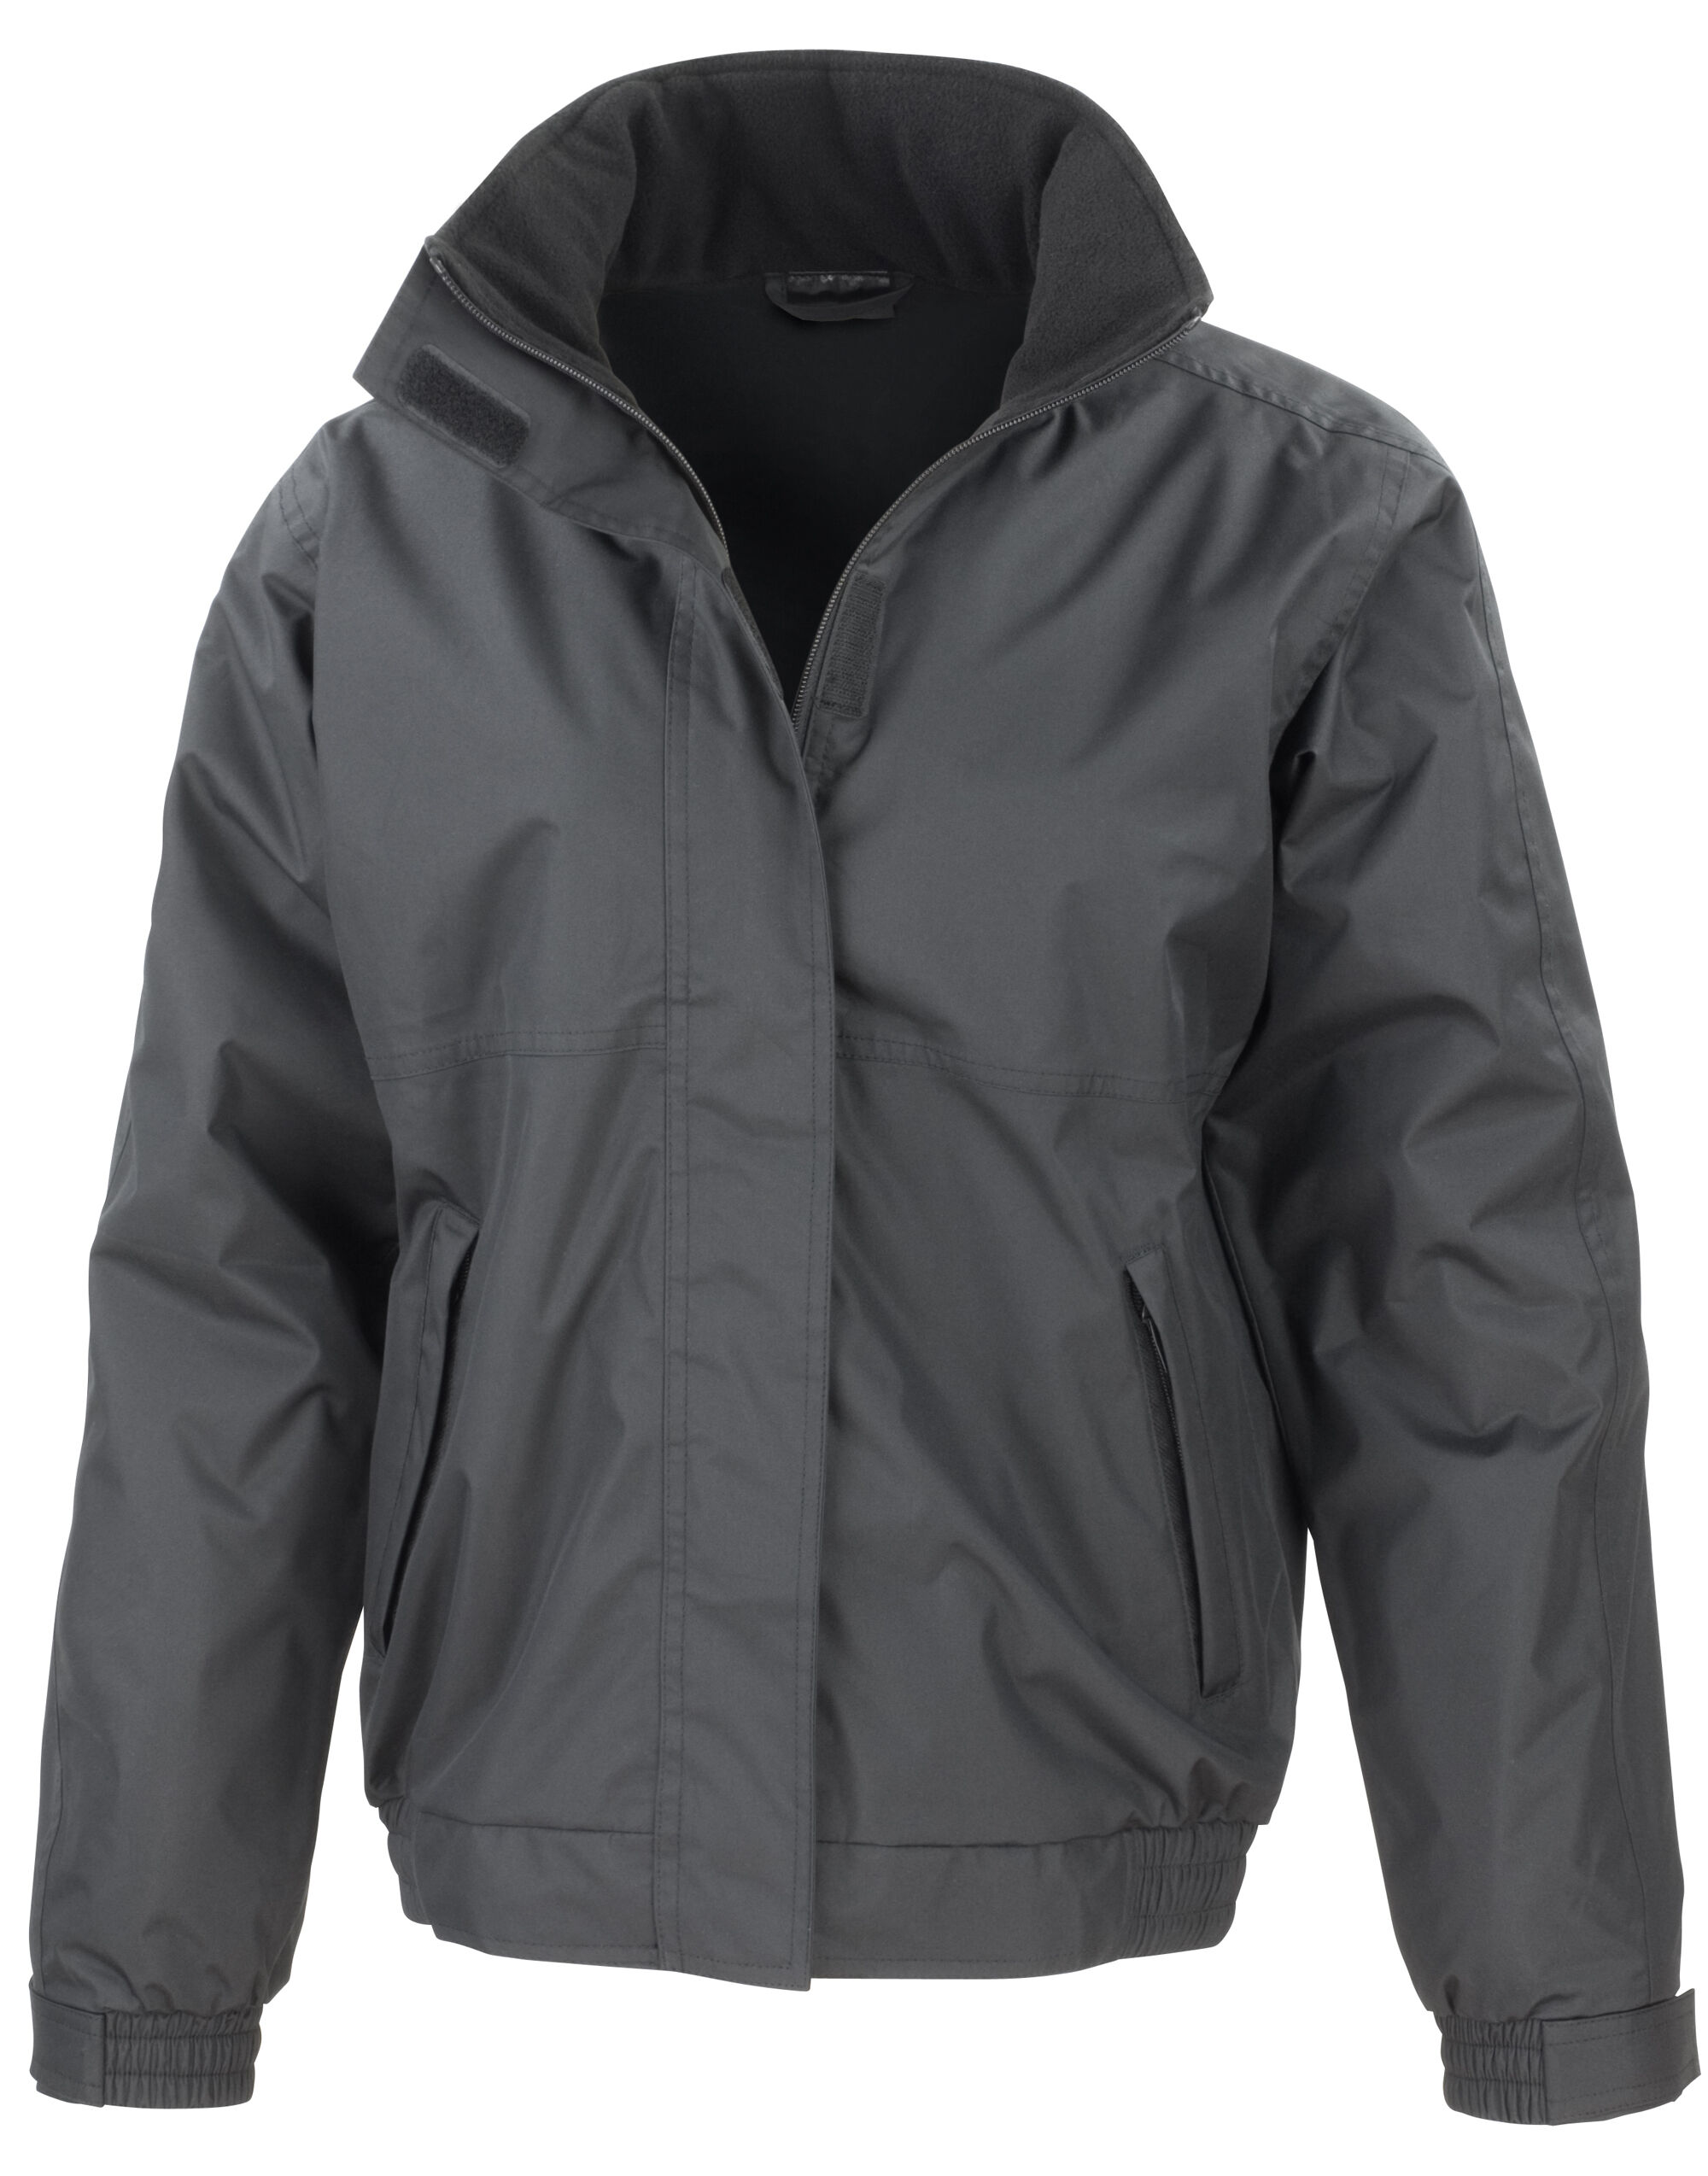 Core Men's Channel Jacket